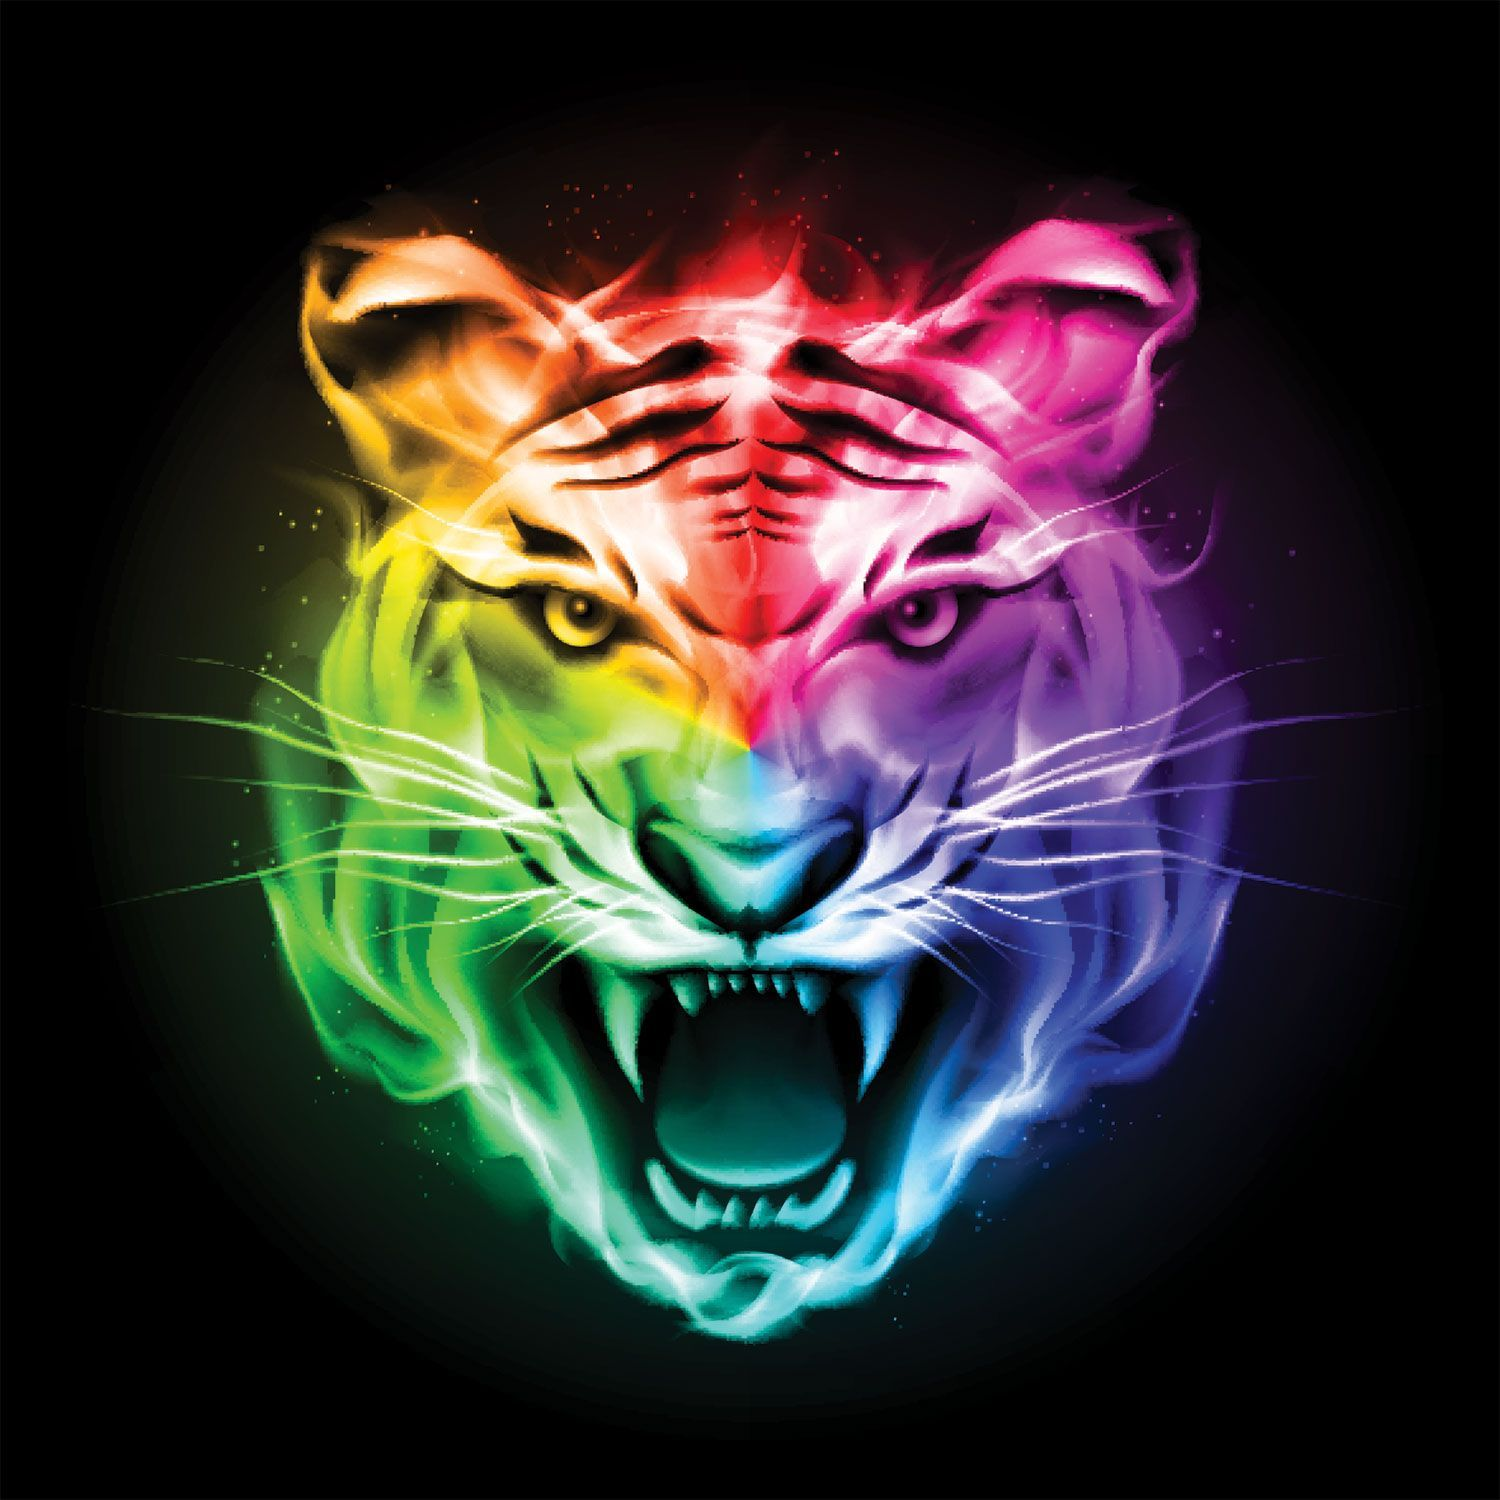 Colorful Tiger Wallpapers   Top Colorful Tiger Backgrounds 1500x1500